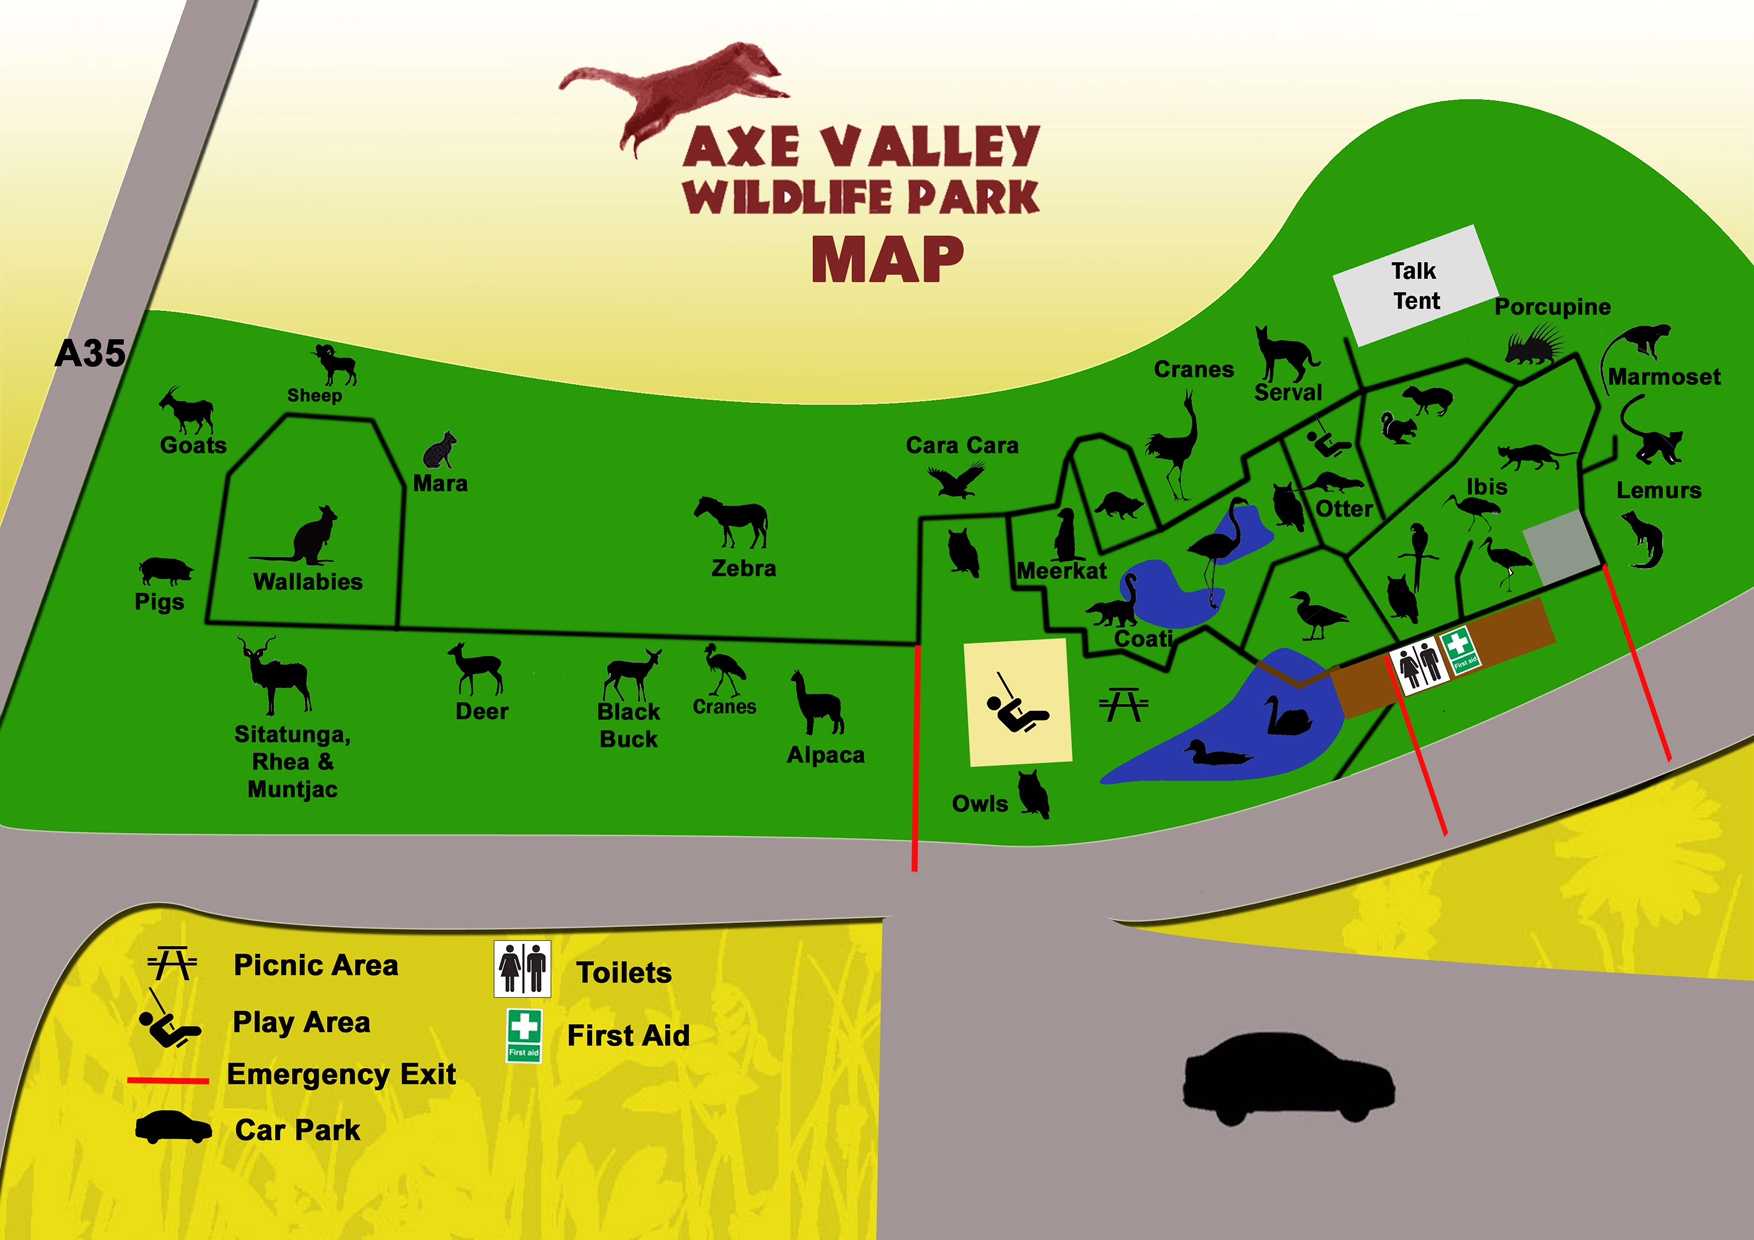 Axe Valley Park Map - Axe Valley Wildlife Park on